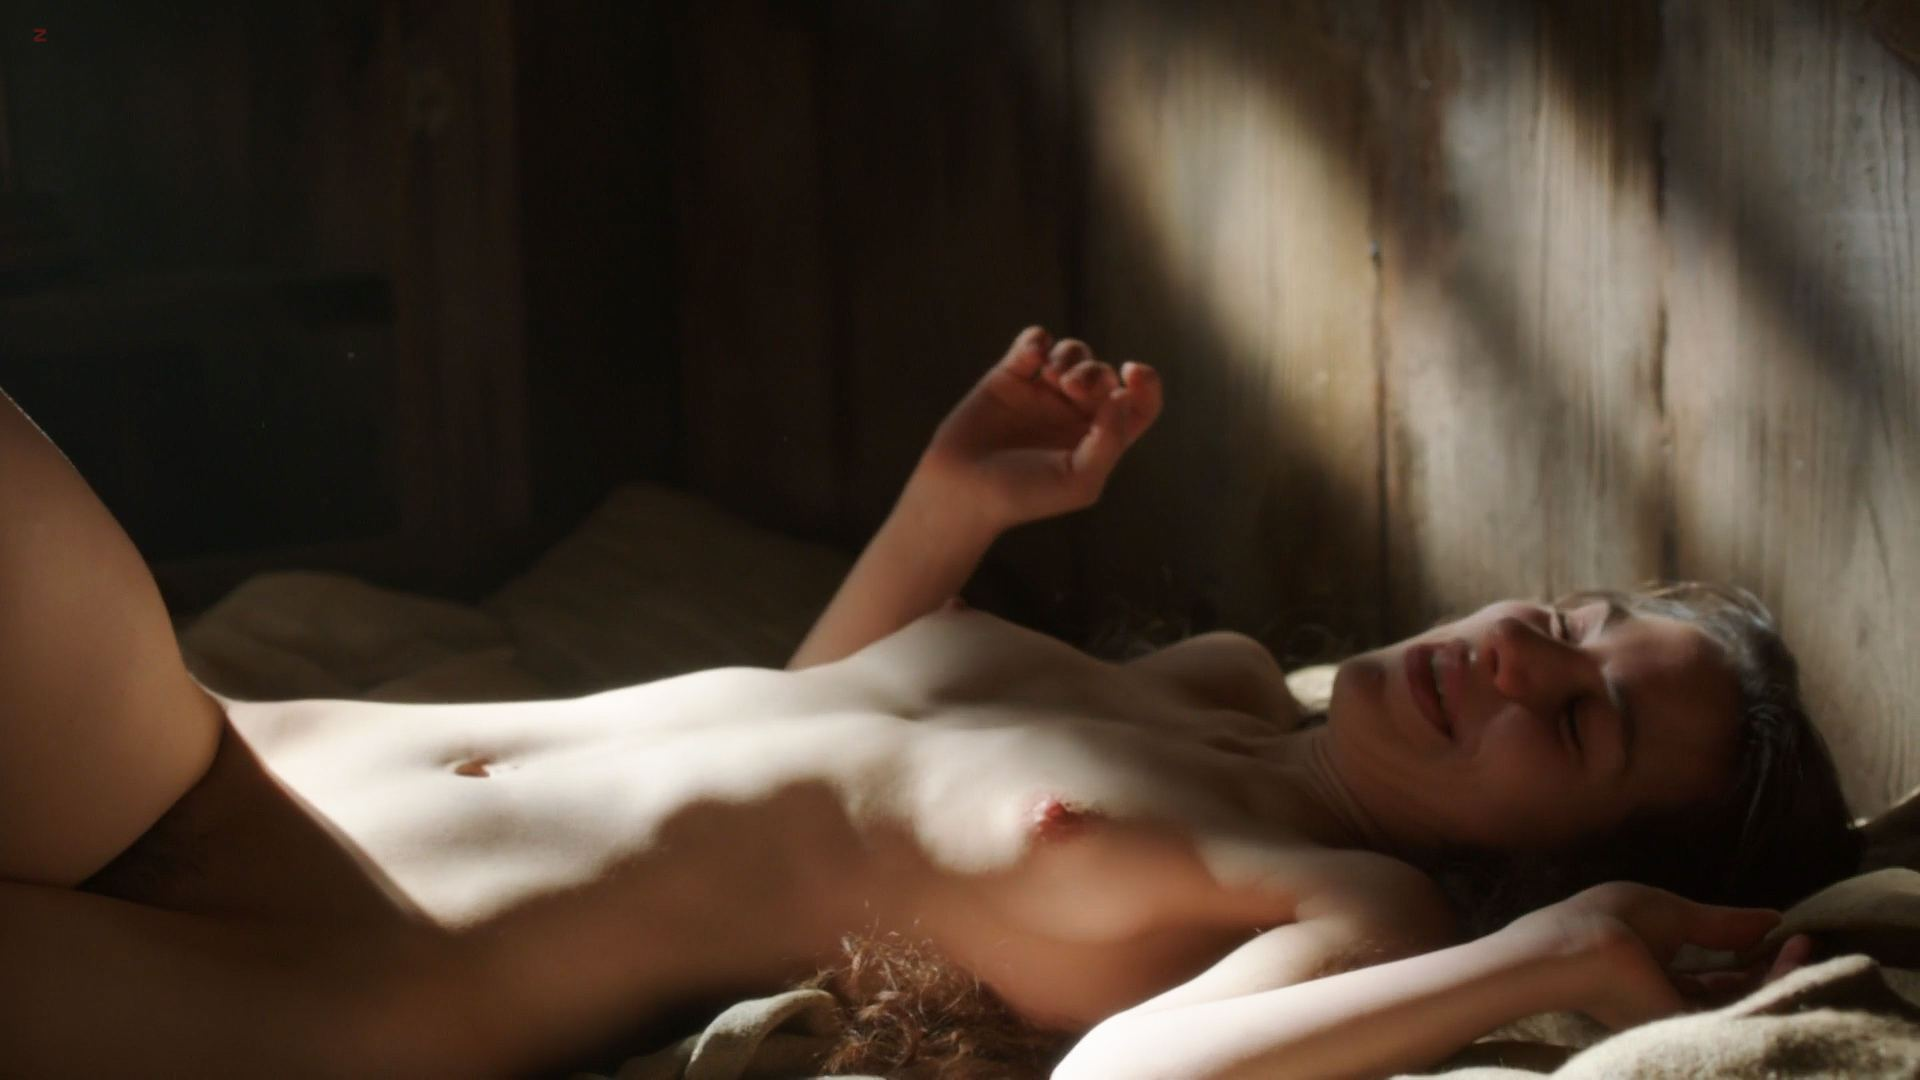 0313175853666_06_Carice-van-Houten-nude-bush-Sahara-Knite-and-Amy-Dawson-nude-sex-Game-Of-Thrones-2012-s2e2-HD-1080p-000.jpg